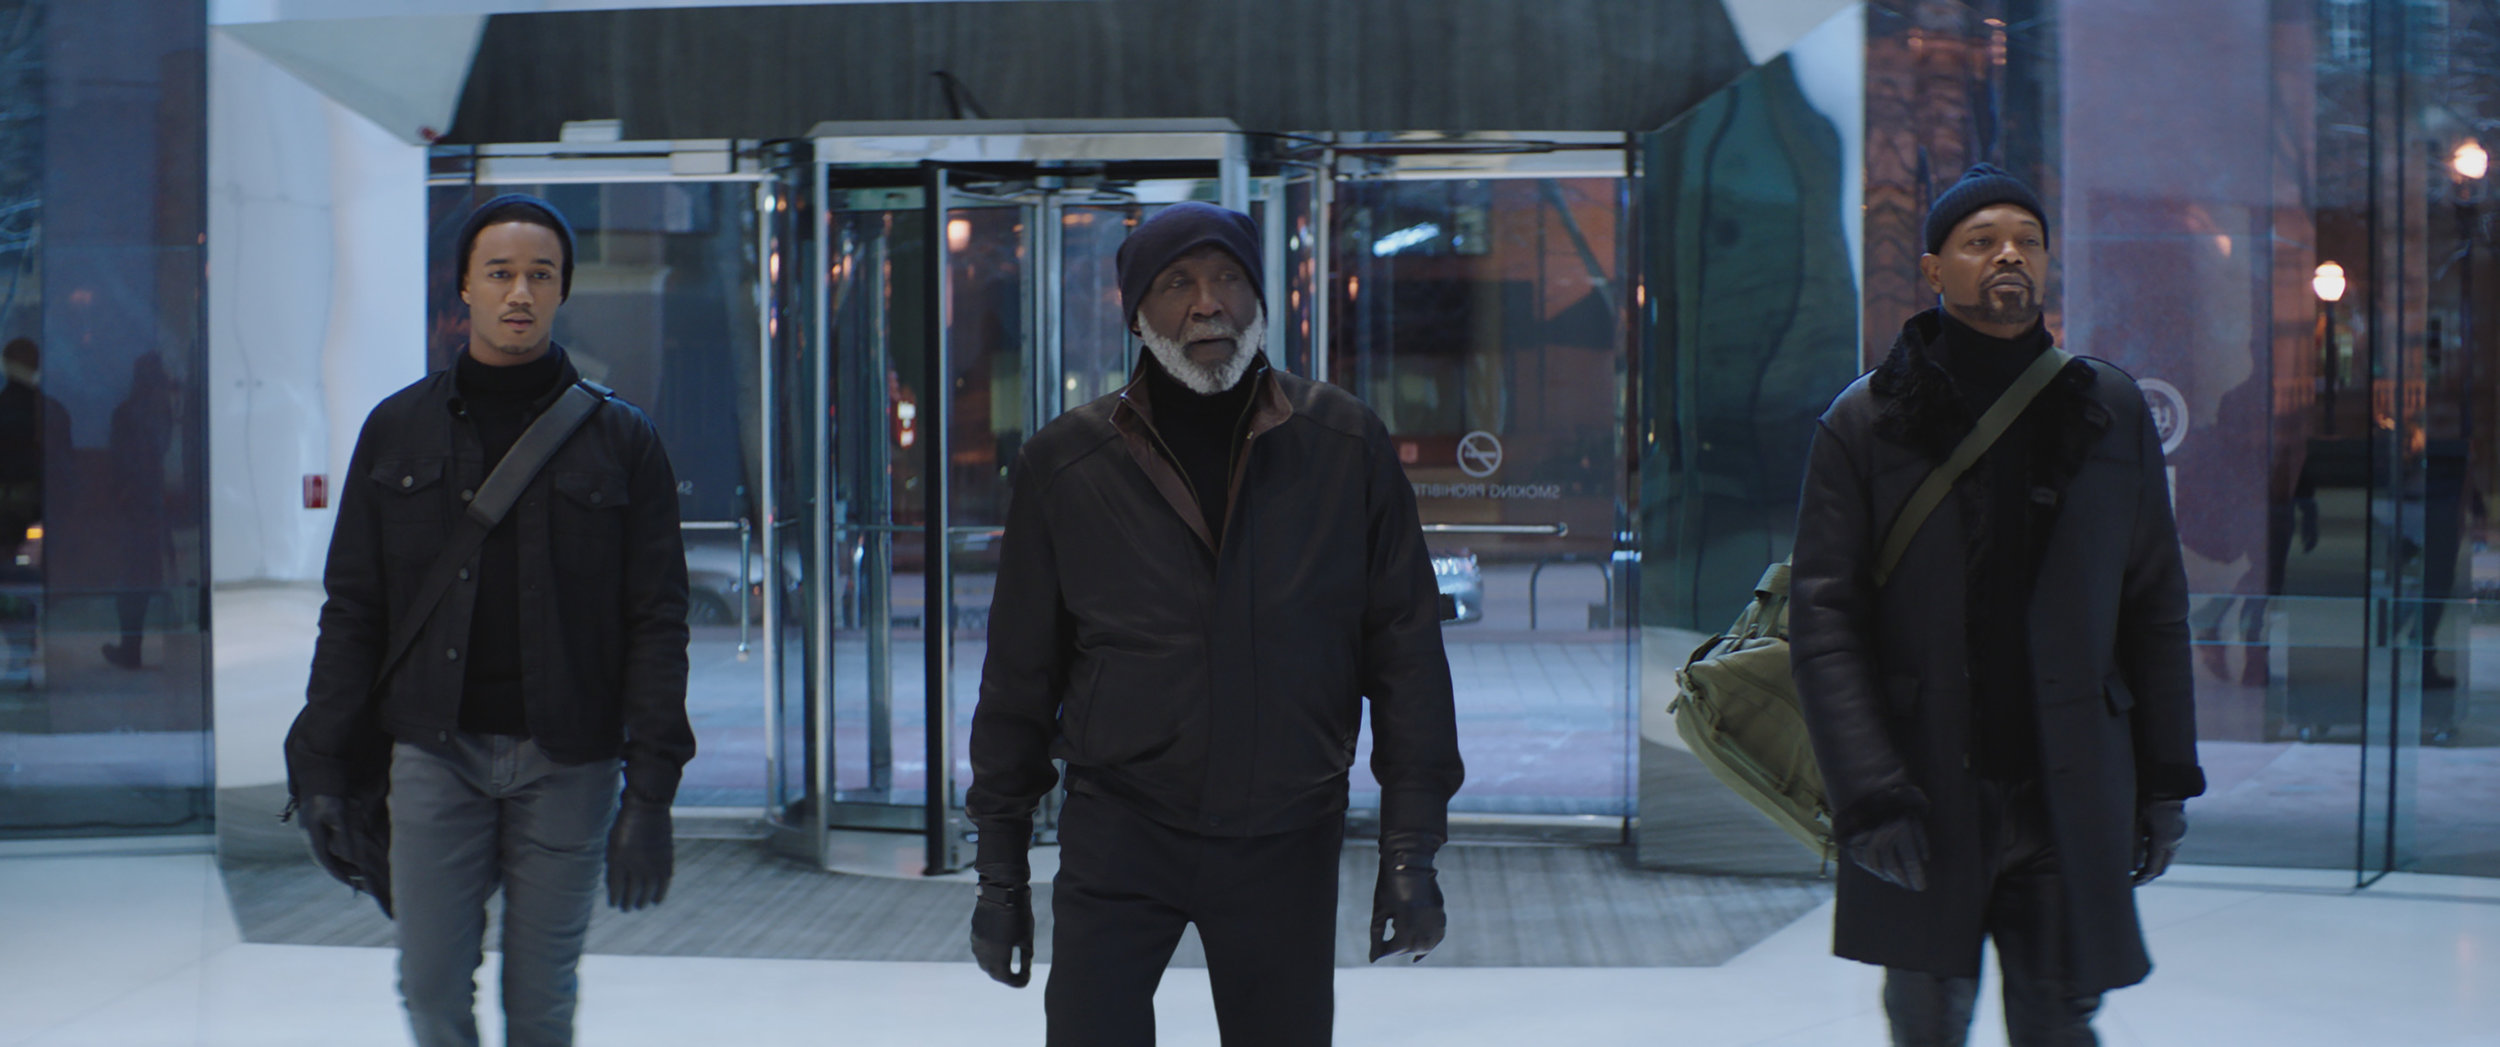 "Three generations of Shaft men — from left: J.J. (Jessie T. Usher), John I (Richard Roundtree) and John II (Samuel L. Jackson) — get ready for action in ""Shaft."" (Photo courtesy of Warner Bros. / New Line Cinema.)"